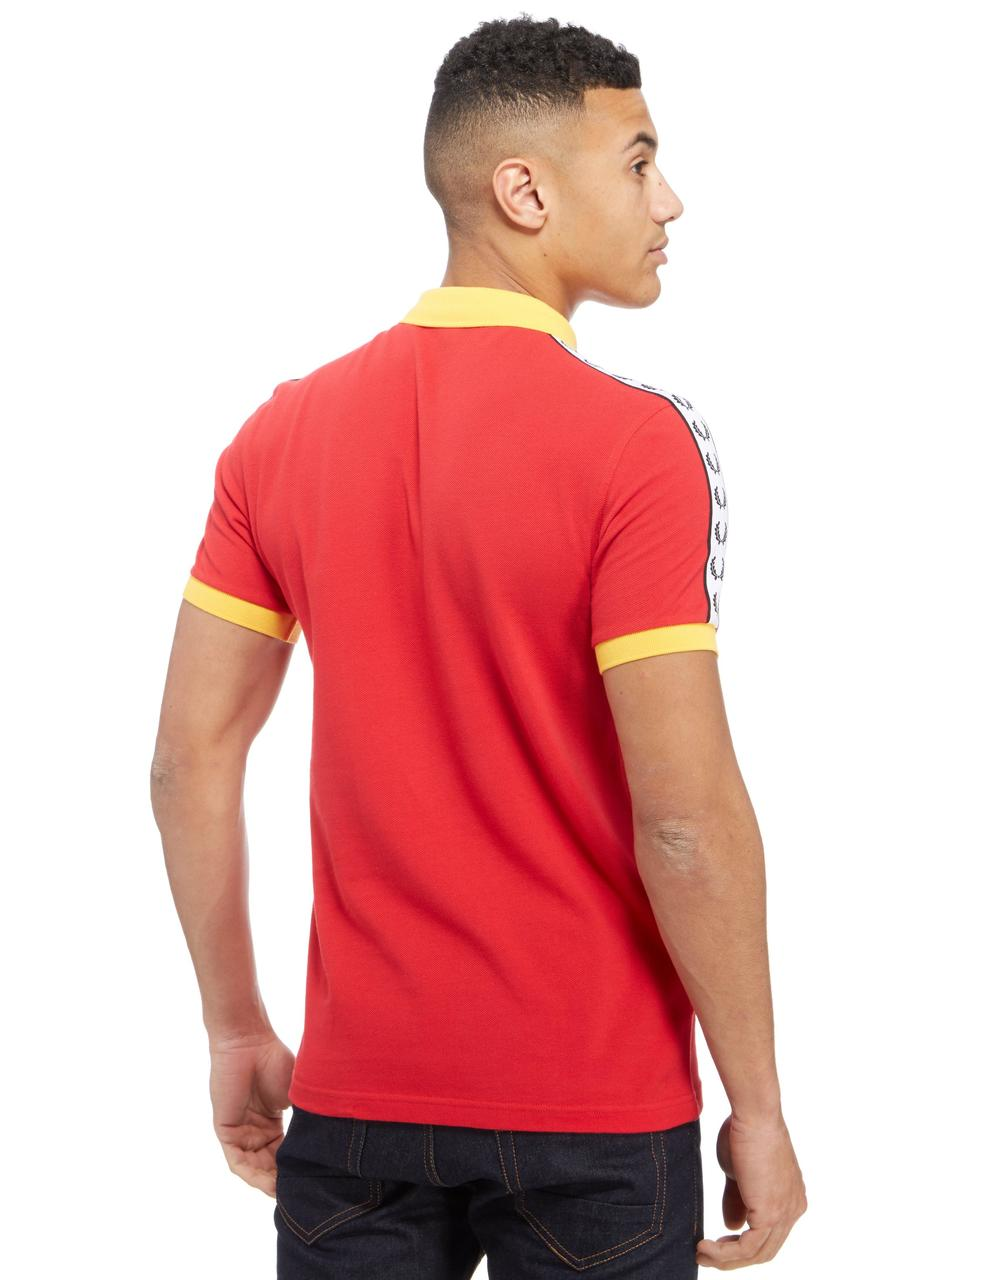 Fred perry spain tape polo shirt red yellow polo 39 s for Spain polo shirt 2014